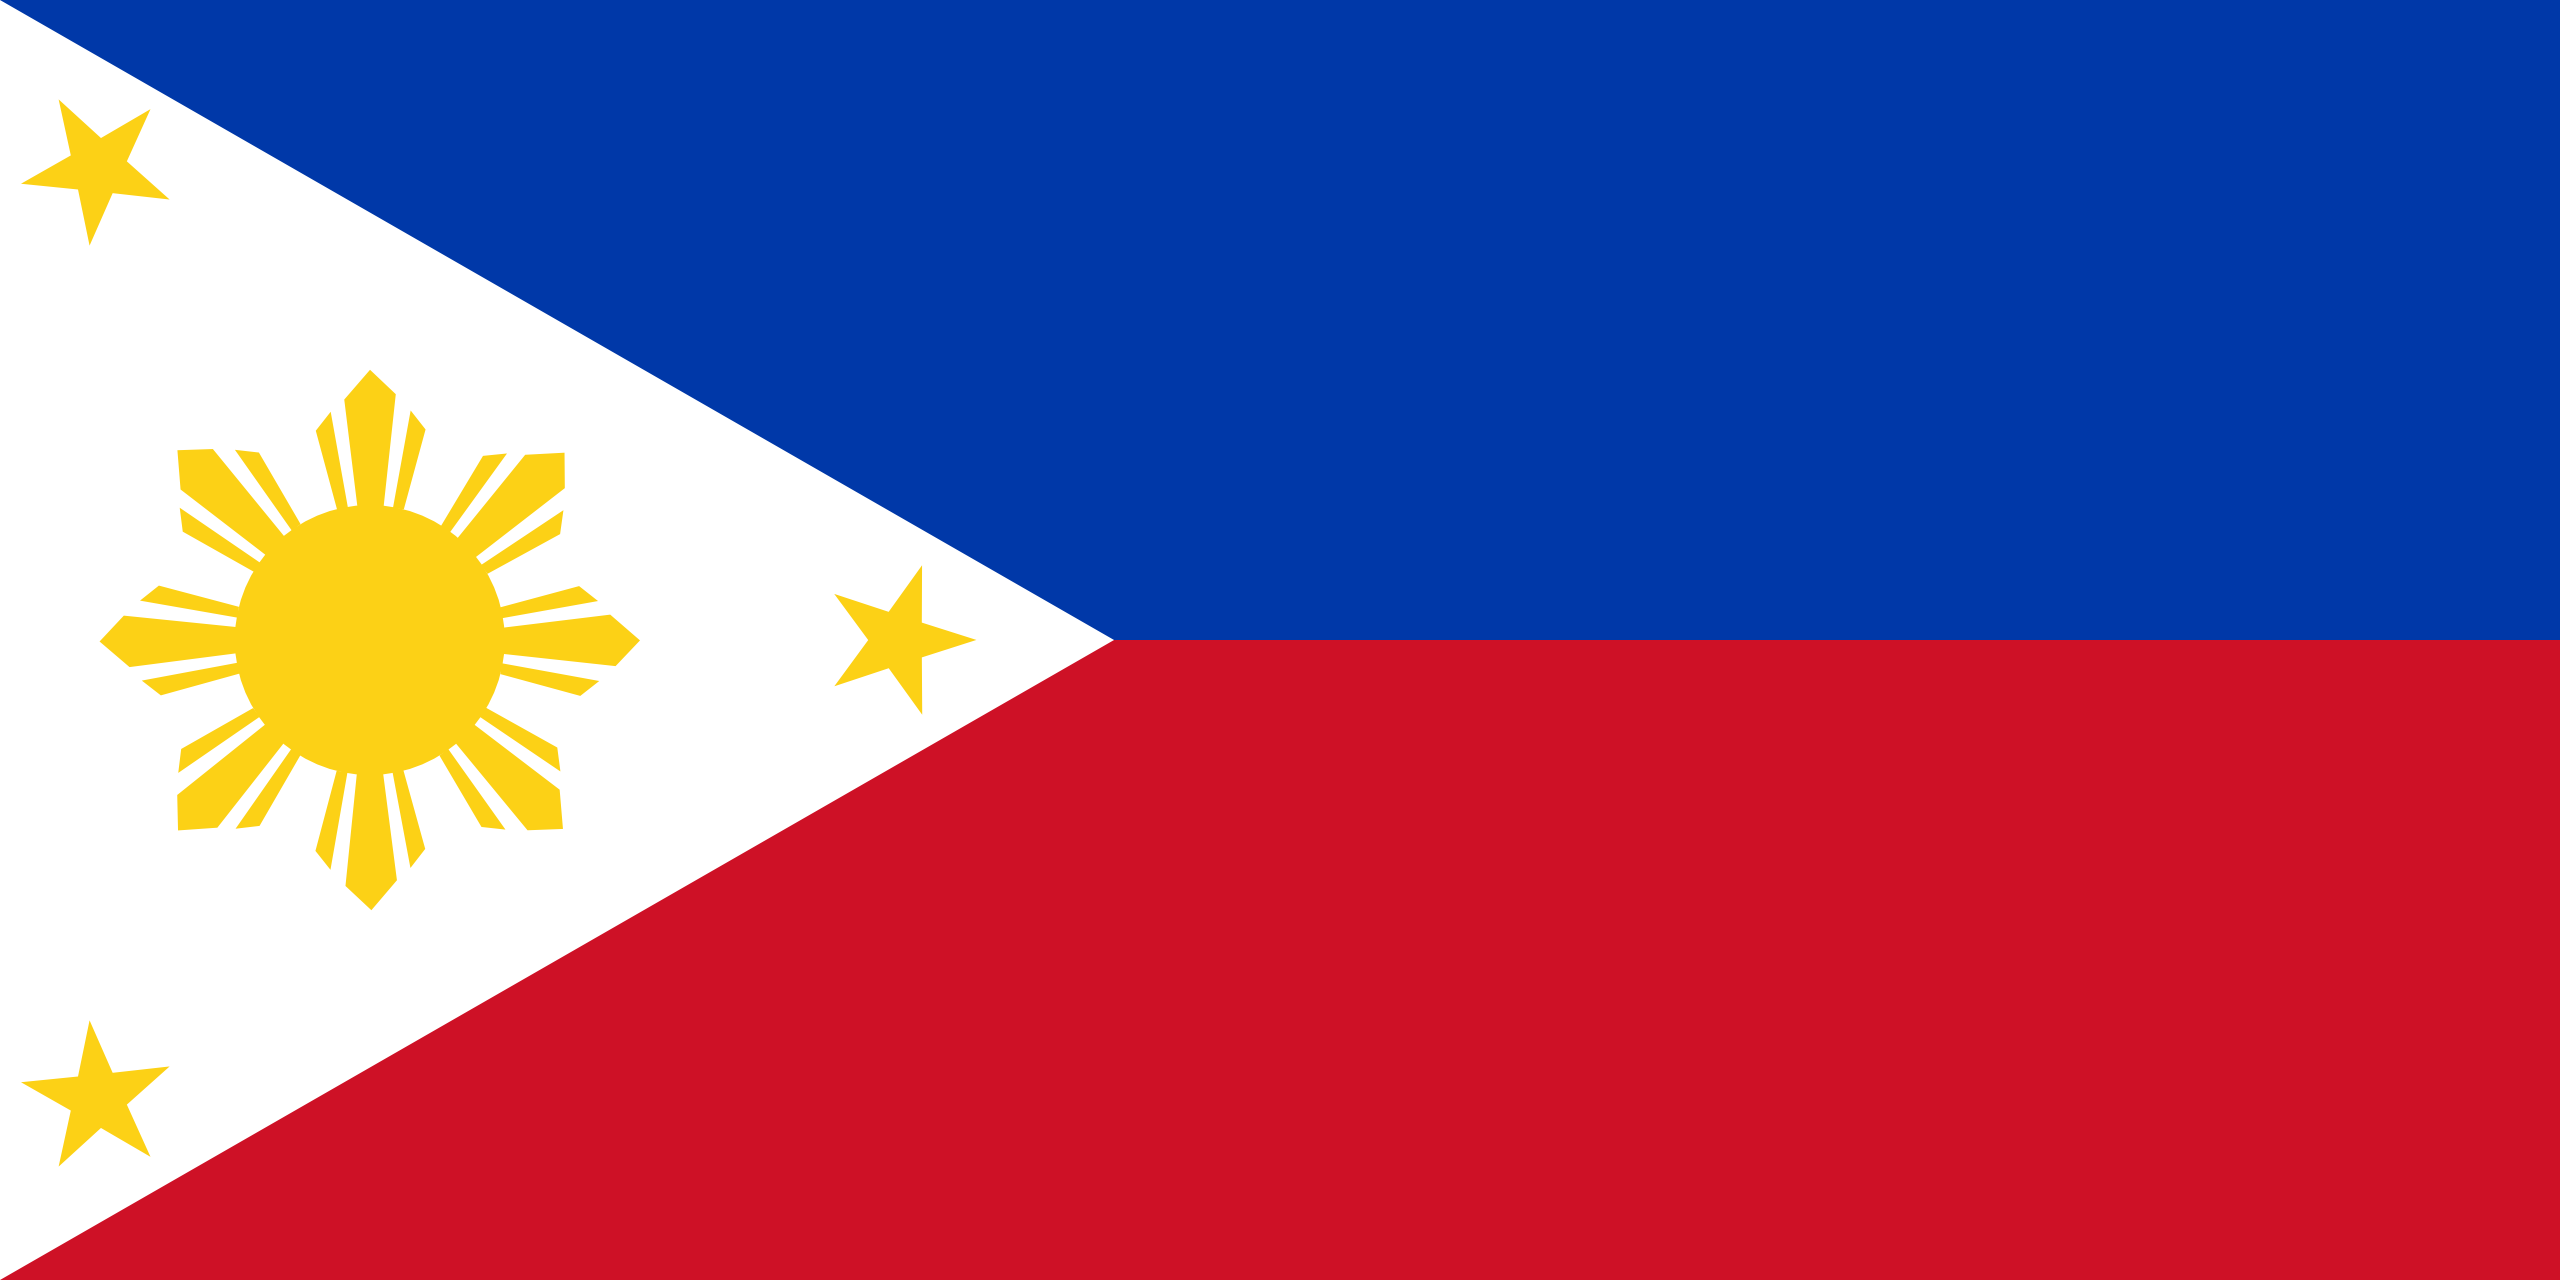 filipinas, Land, Emblem, Logo, Symbol - Wallpaper HD - Prof.-falken.com